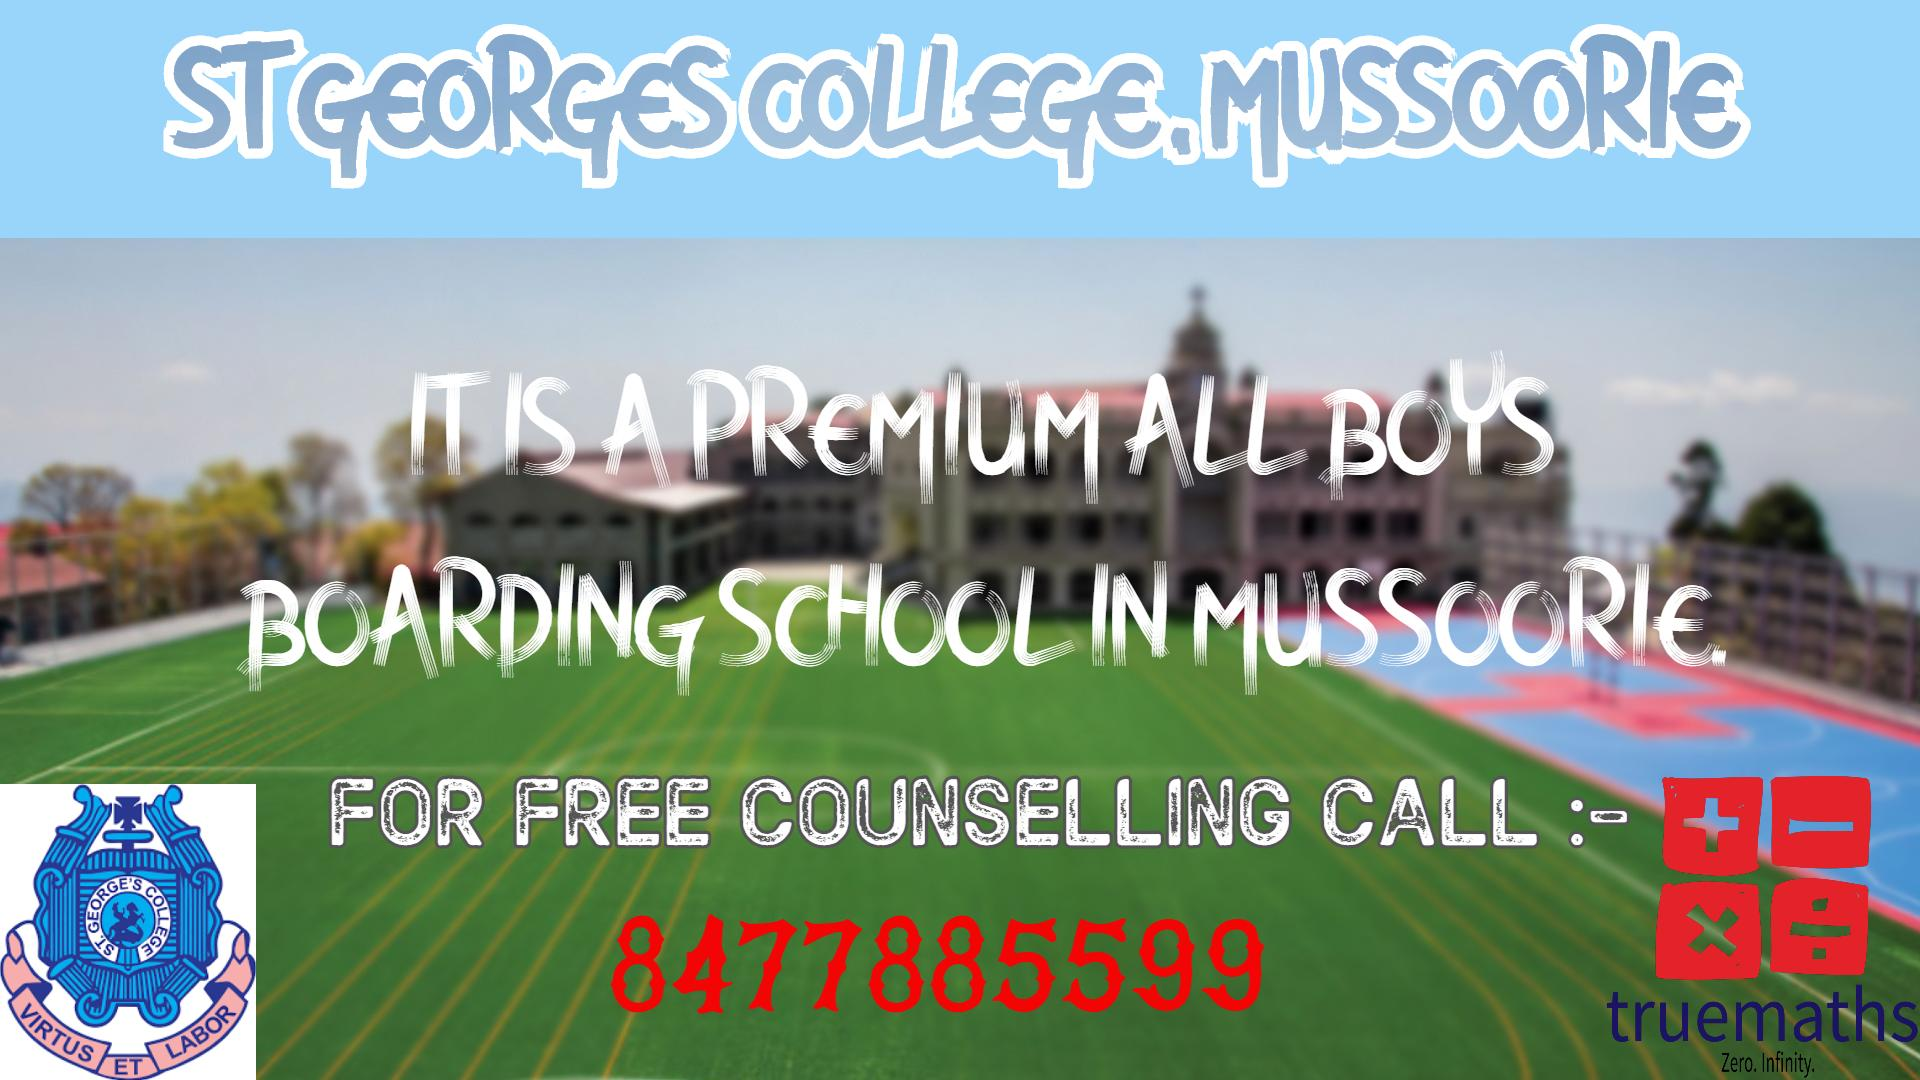 St. George's College Mussoorie